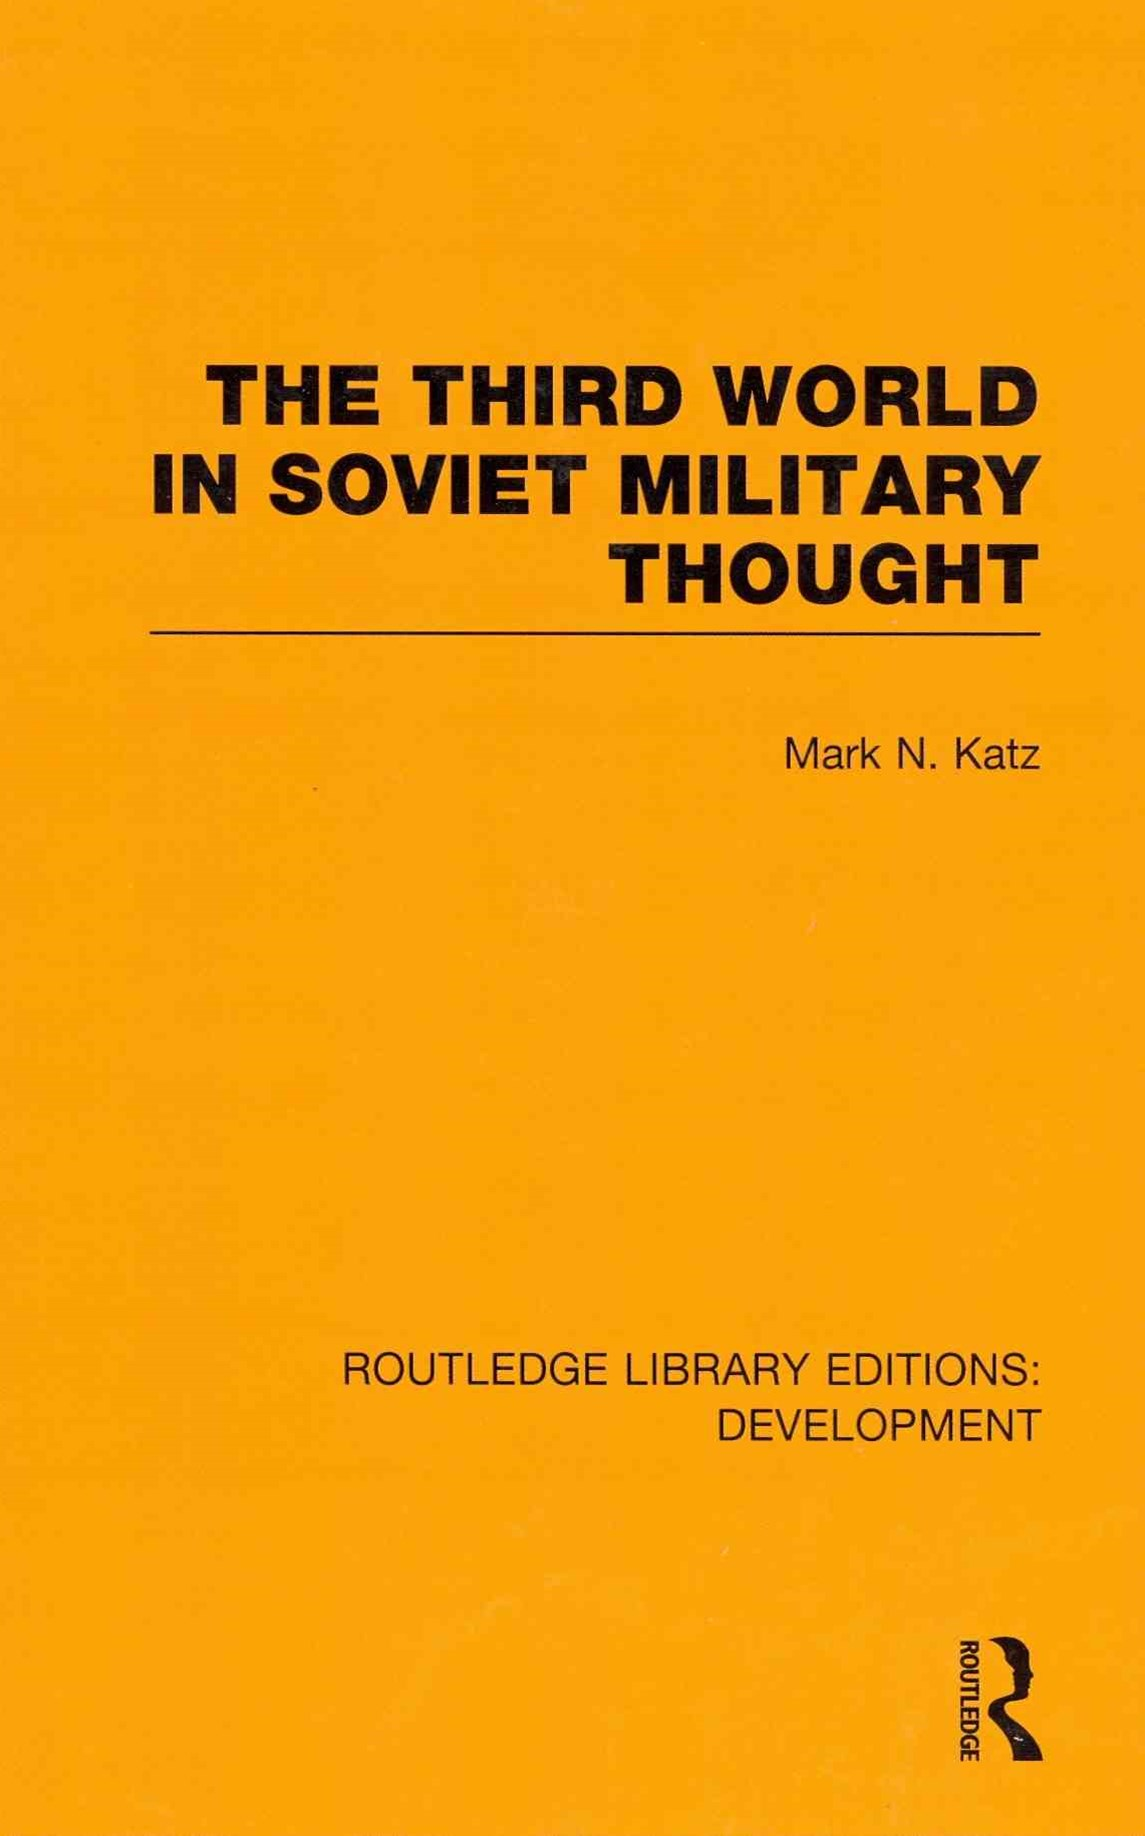 Third World in Soviet Military Thought